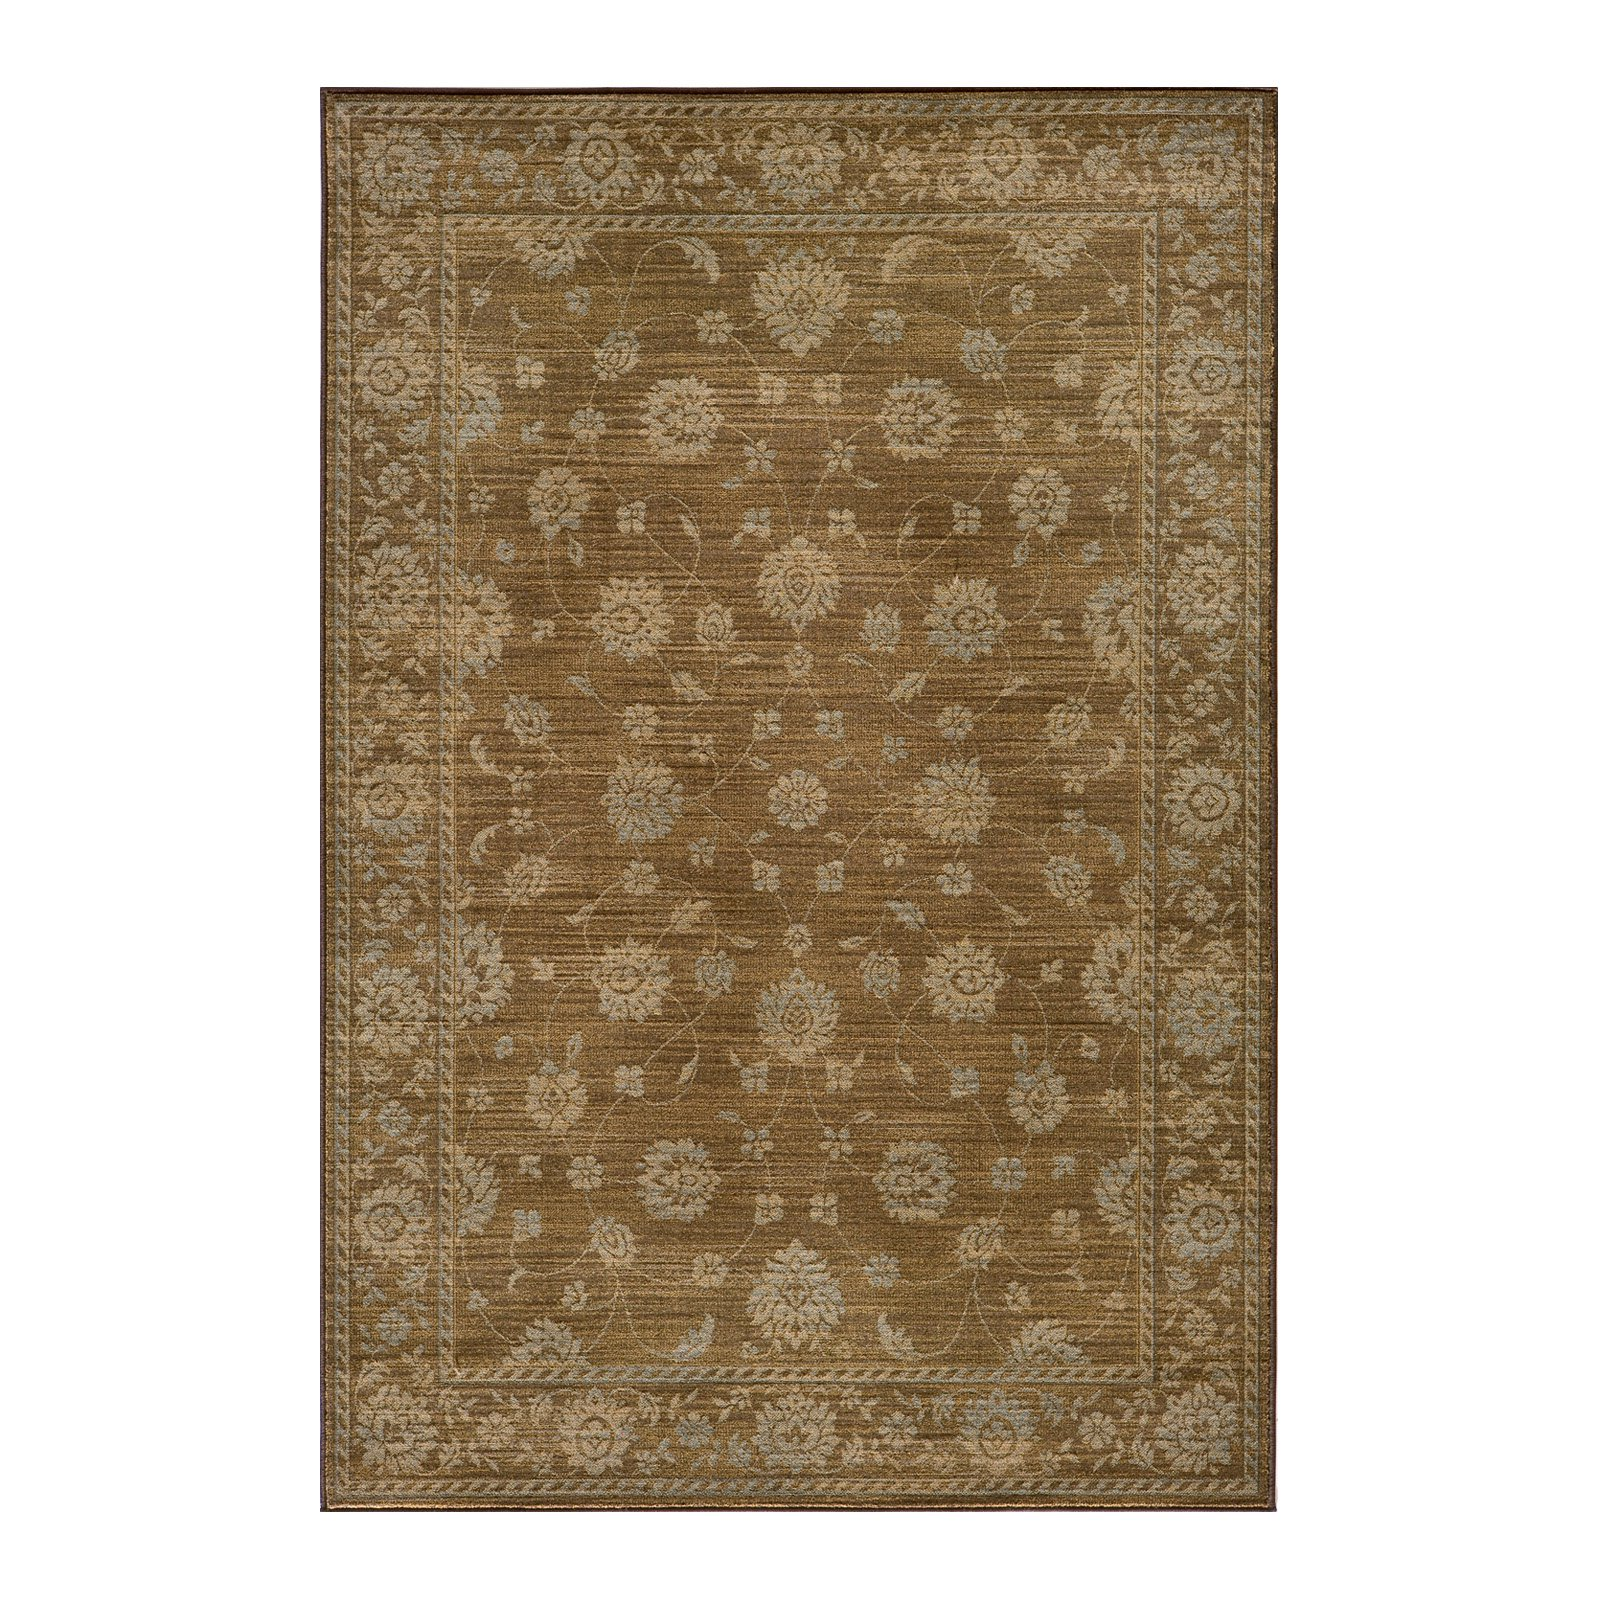 Momeni Belmont BE-02 Area Rug Brown by Momeni